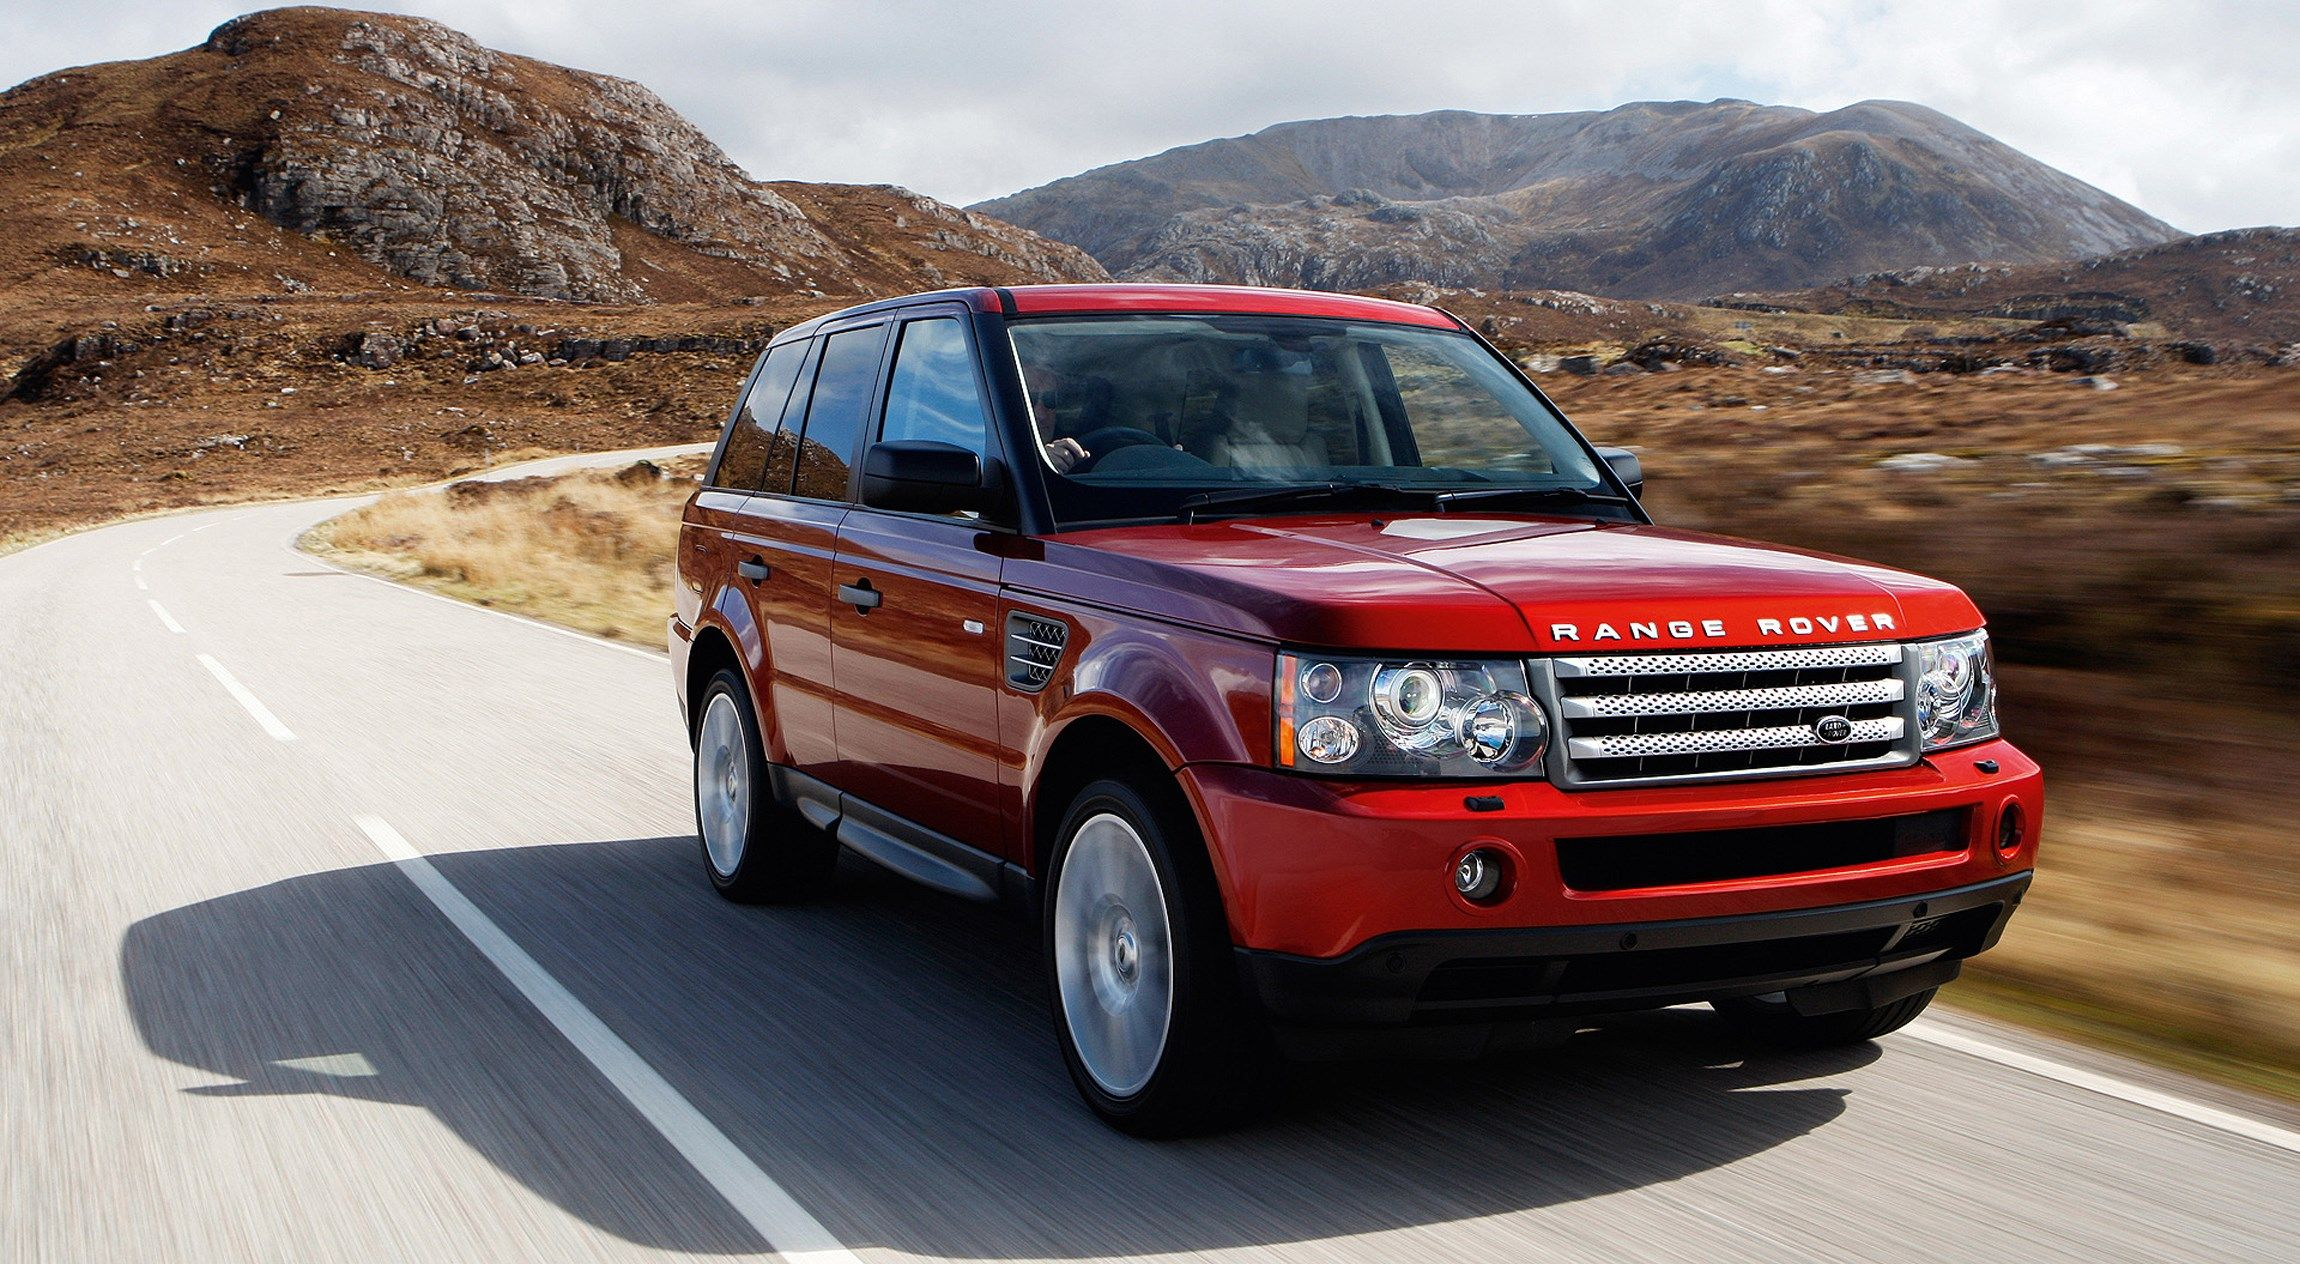 Cool Wallpaper High Resolution Range Rover - 98bf27c0699b2866133d2a9bd8167503  Perfect Image Reference_238128.jpg